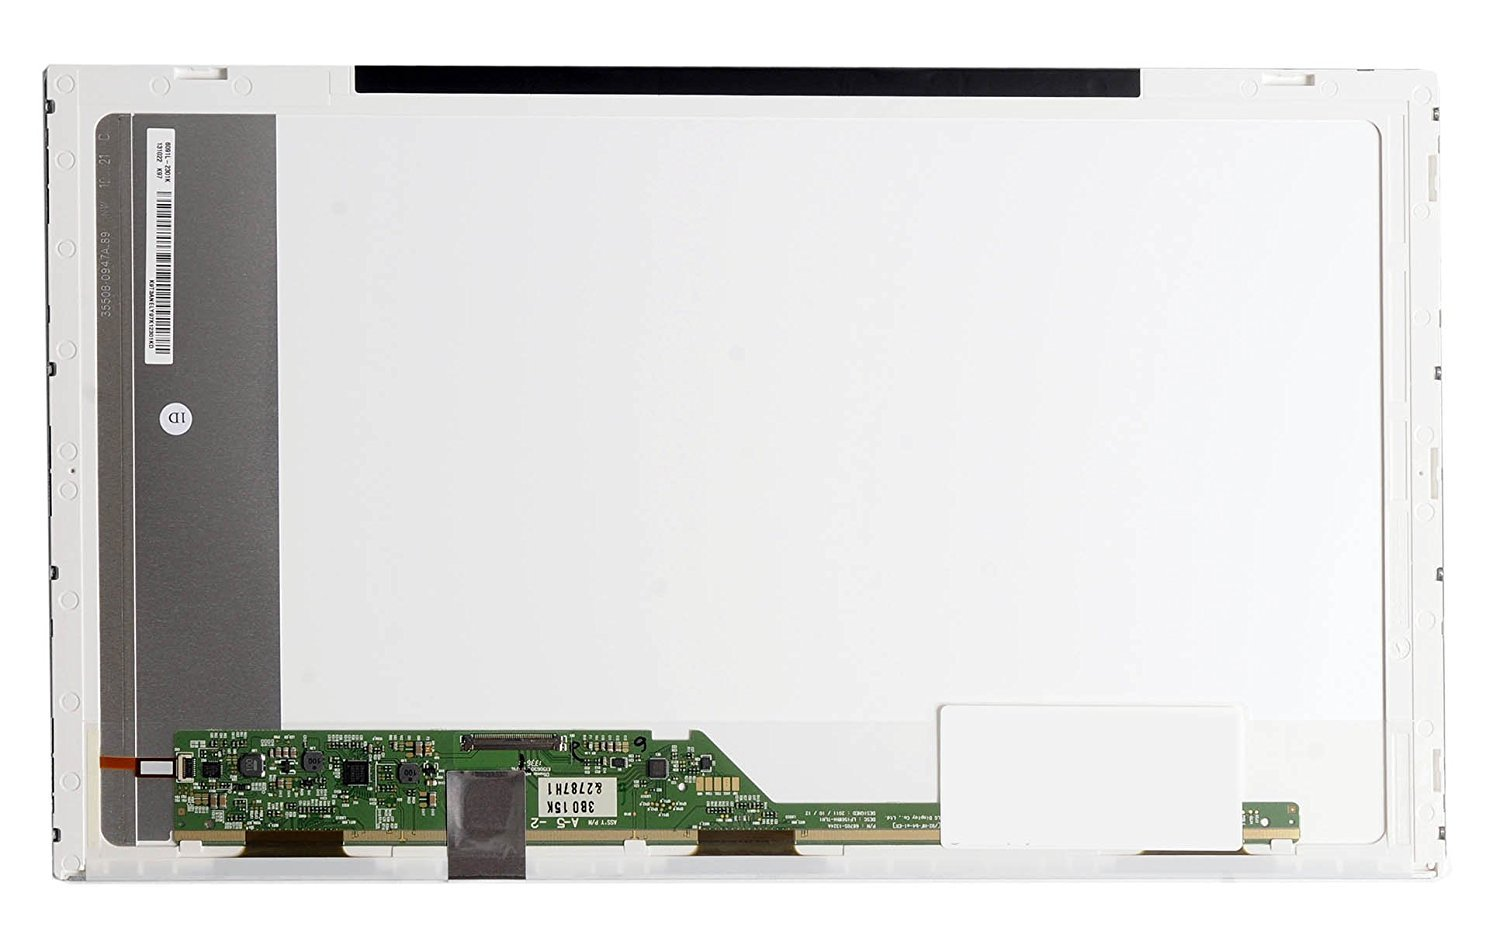 New Pavilion G7-2251dx Replacement Laptop LCD Screen 17.3'' WXGA++ LED DIODE Only.